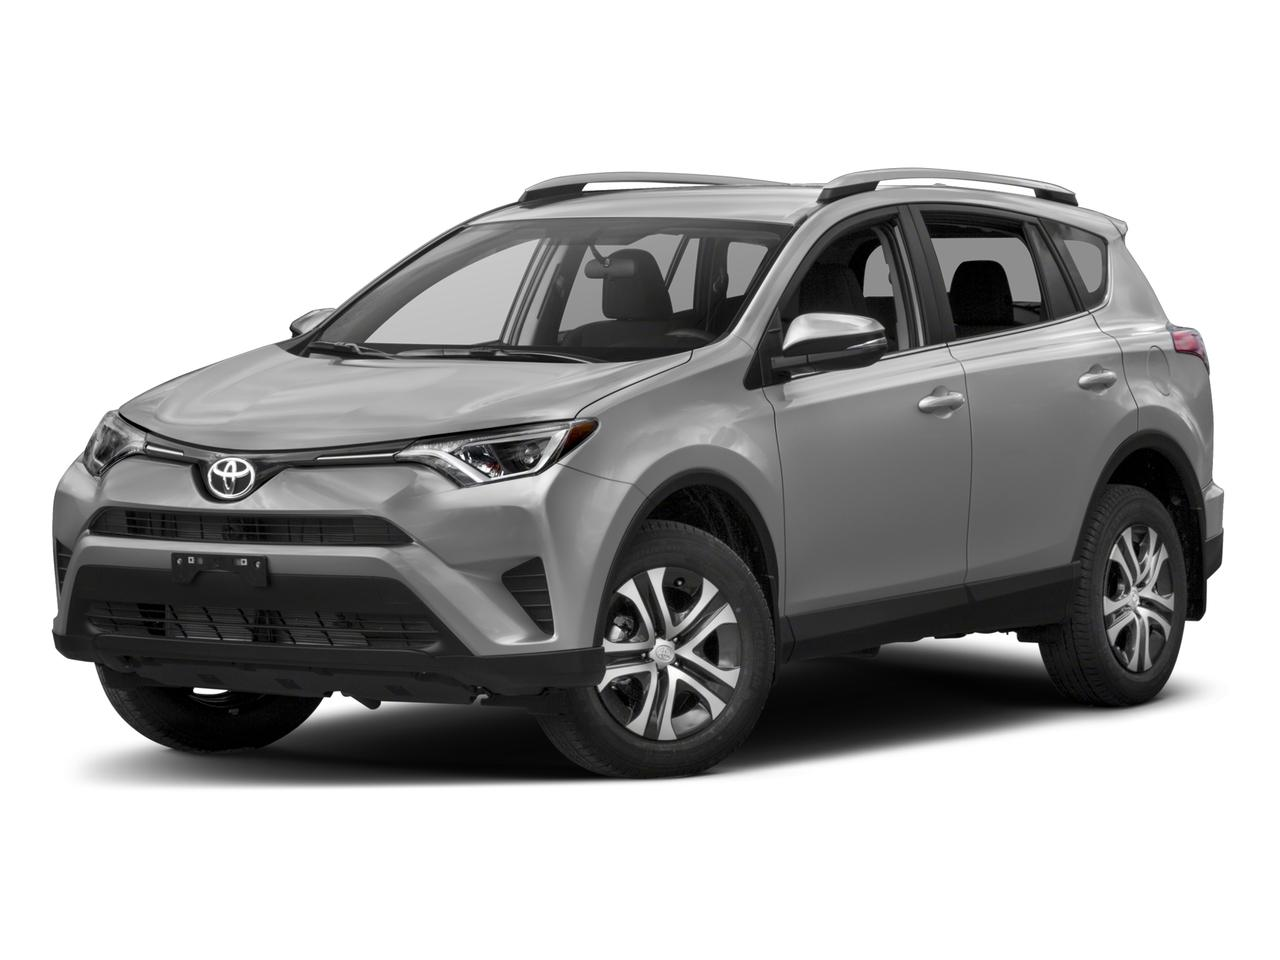 2017 Toyota RAV4 Vehicle Photo in Portland, OR 97225